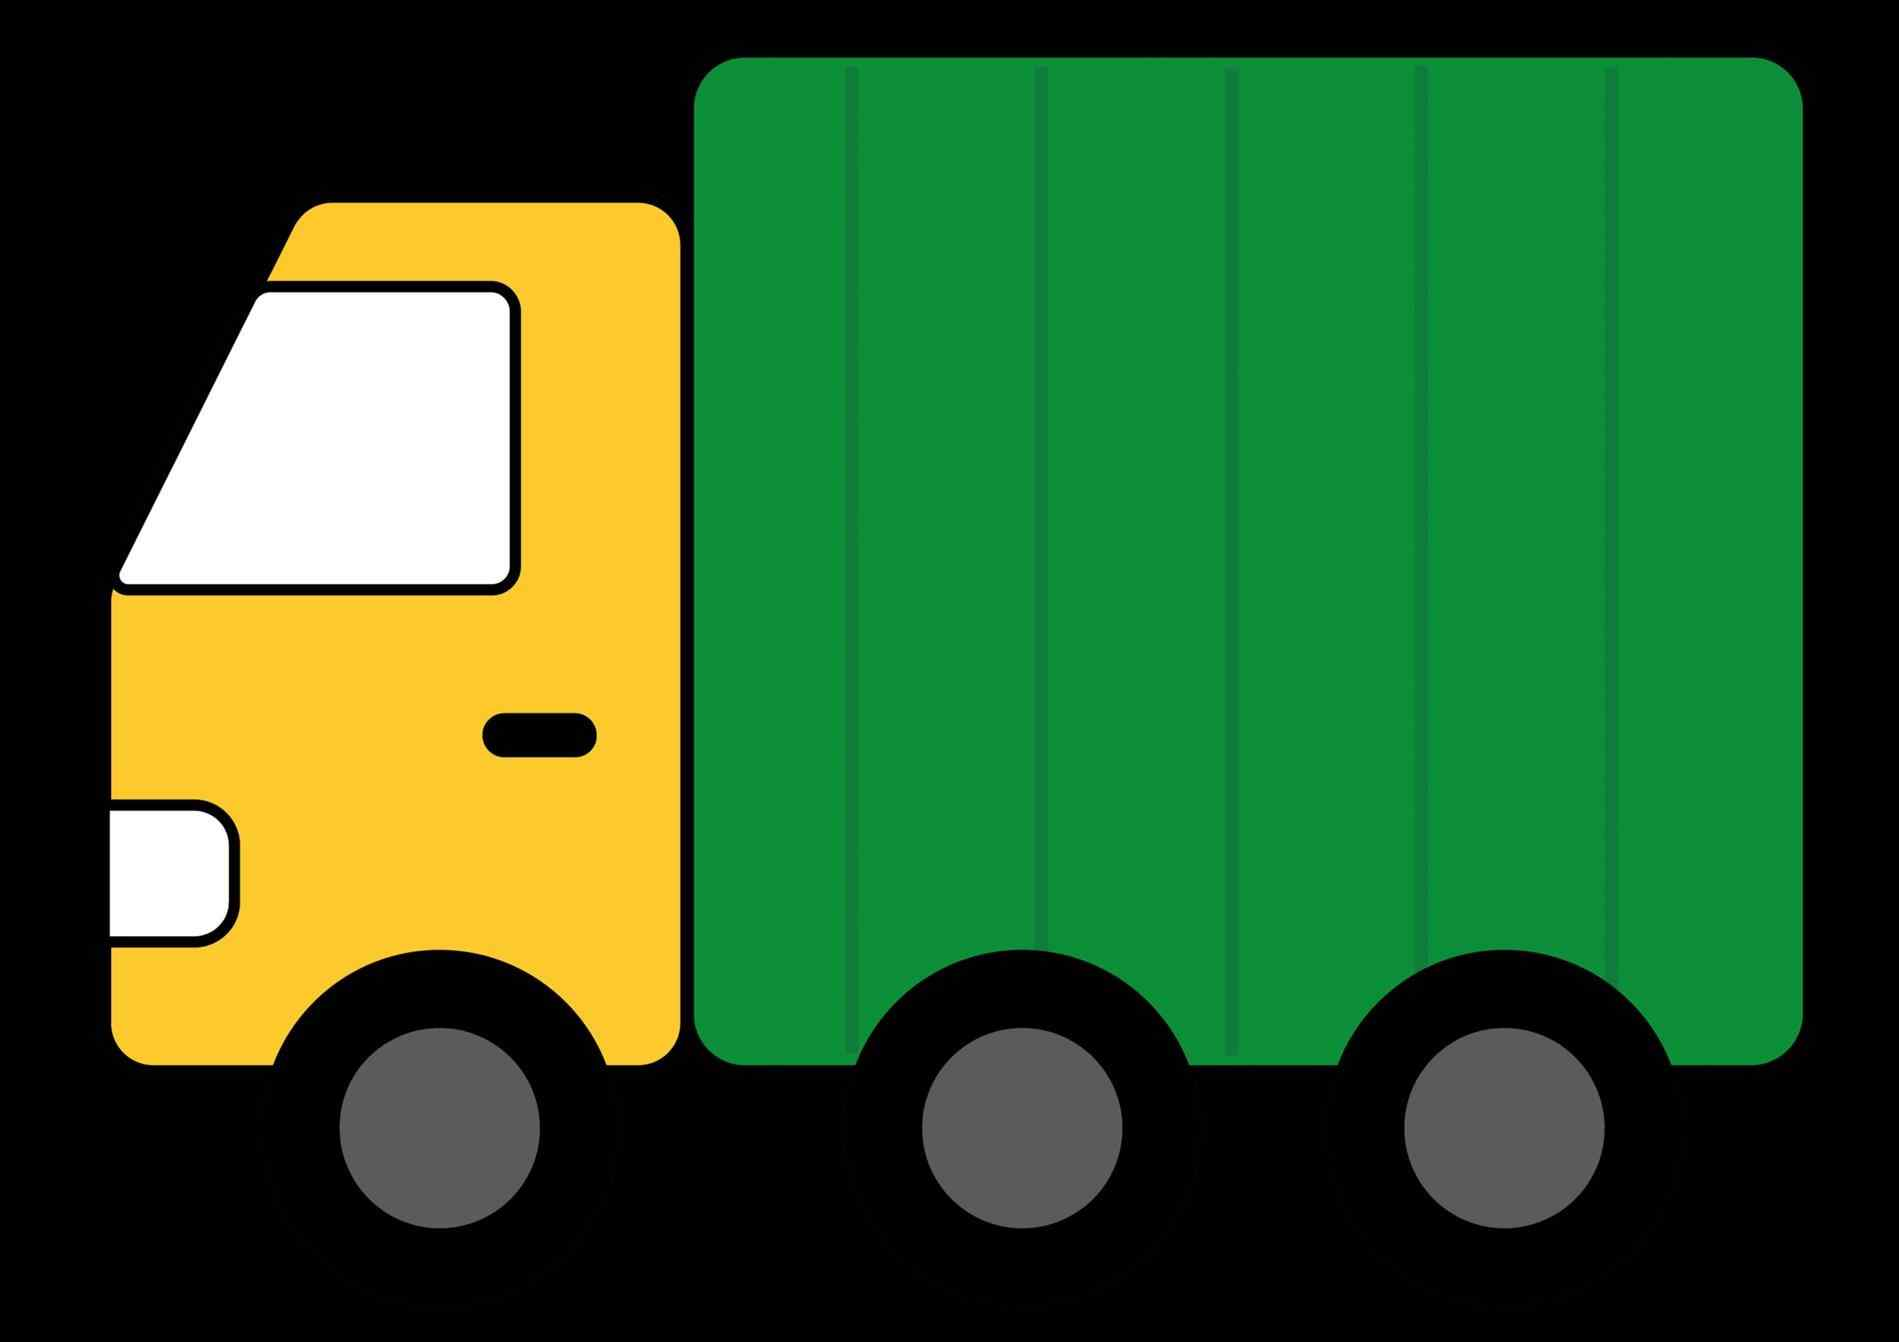 1899x1342 Red Ups Delivery Truck Clipart Pickup Panda Free Imagesrhpandacom